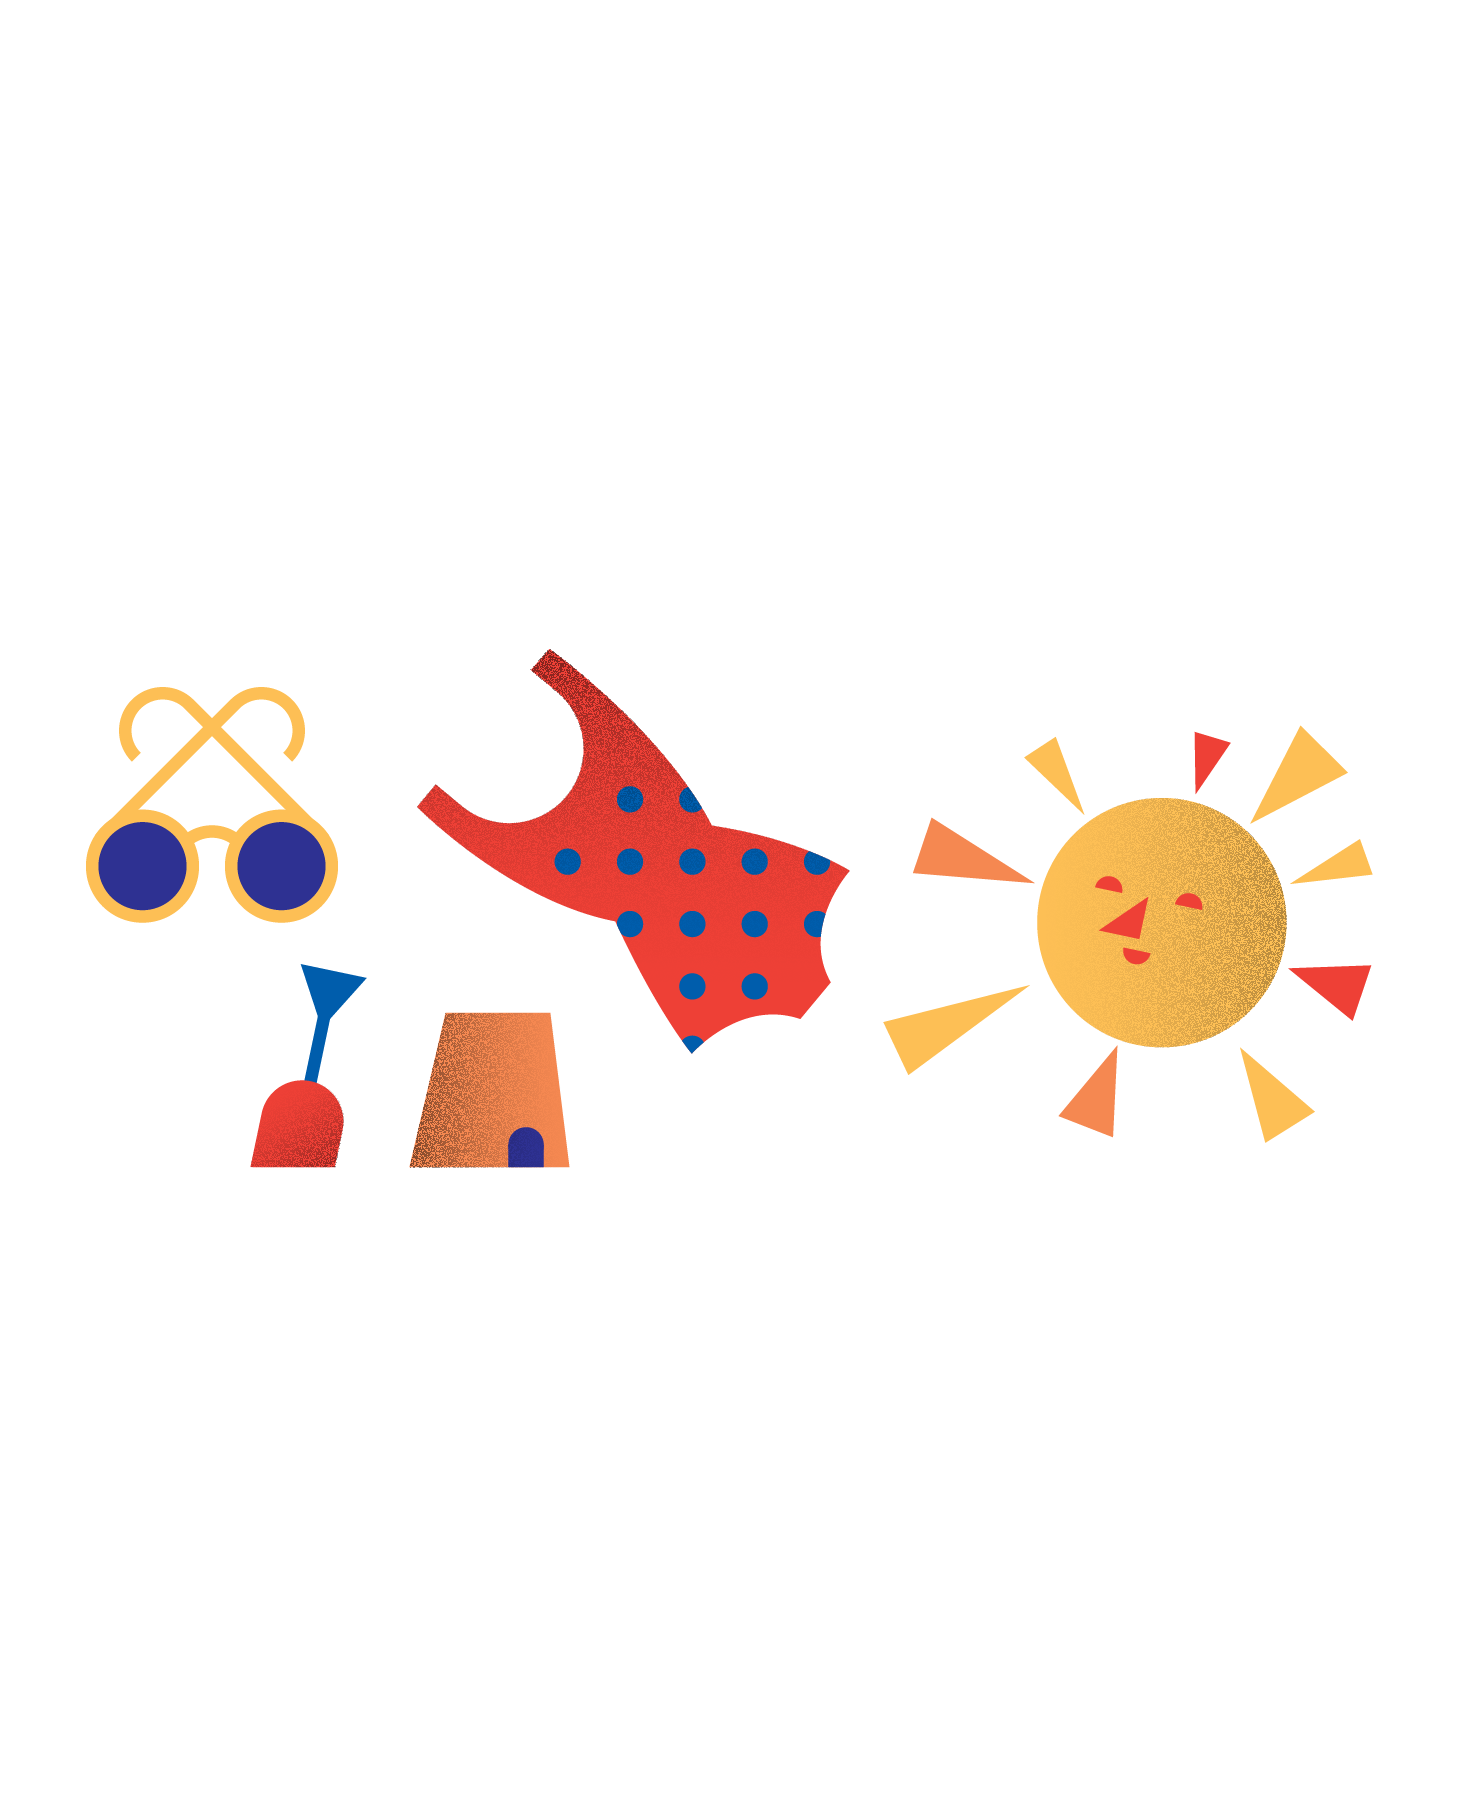 Illustration of the sun, a bathing suit, sunglasses, and a shovel and pail (30)